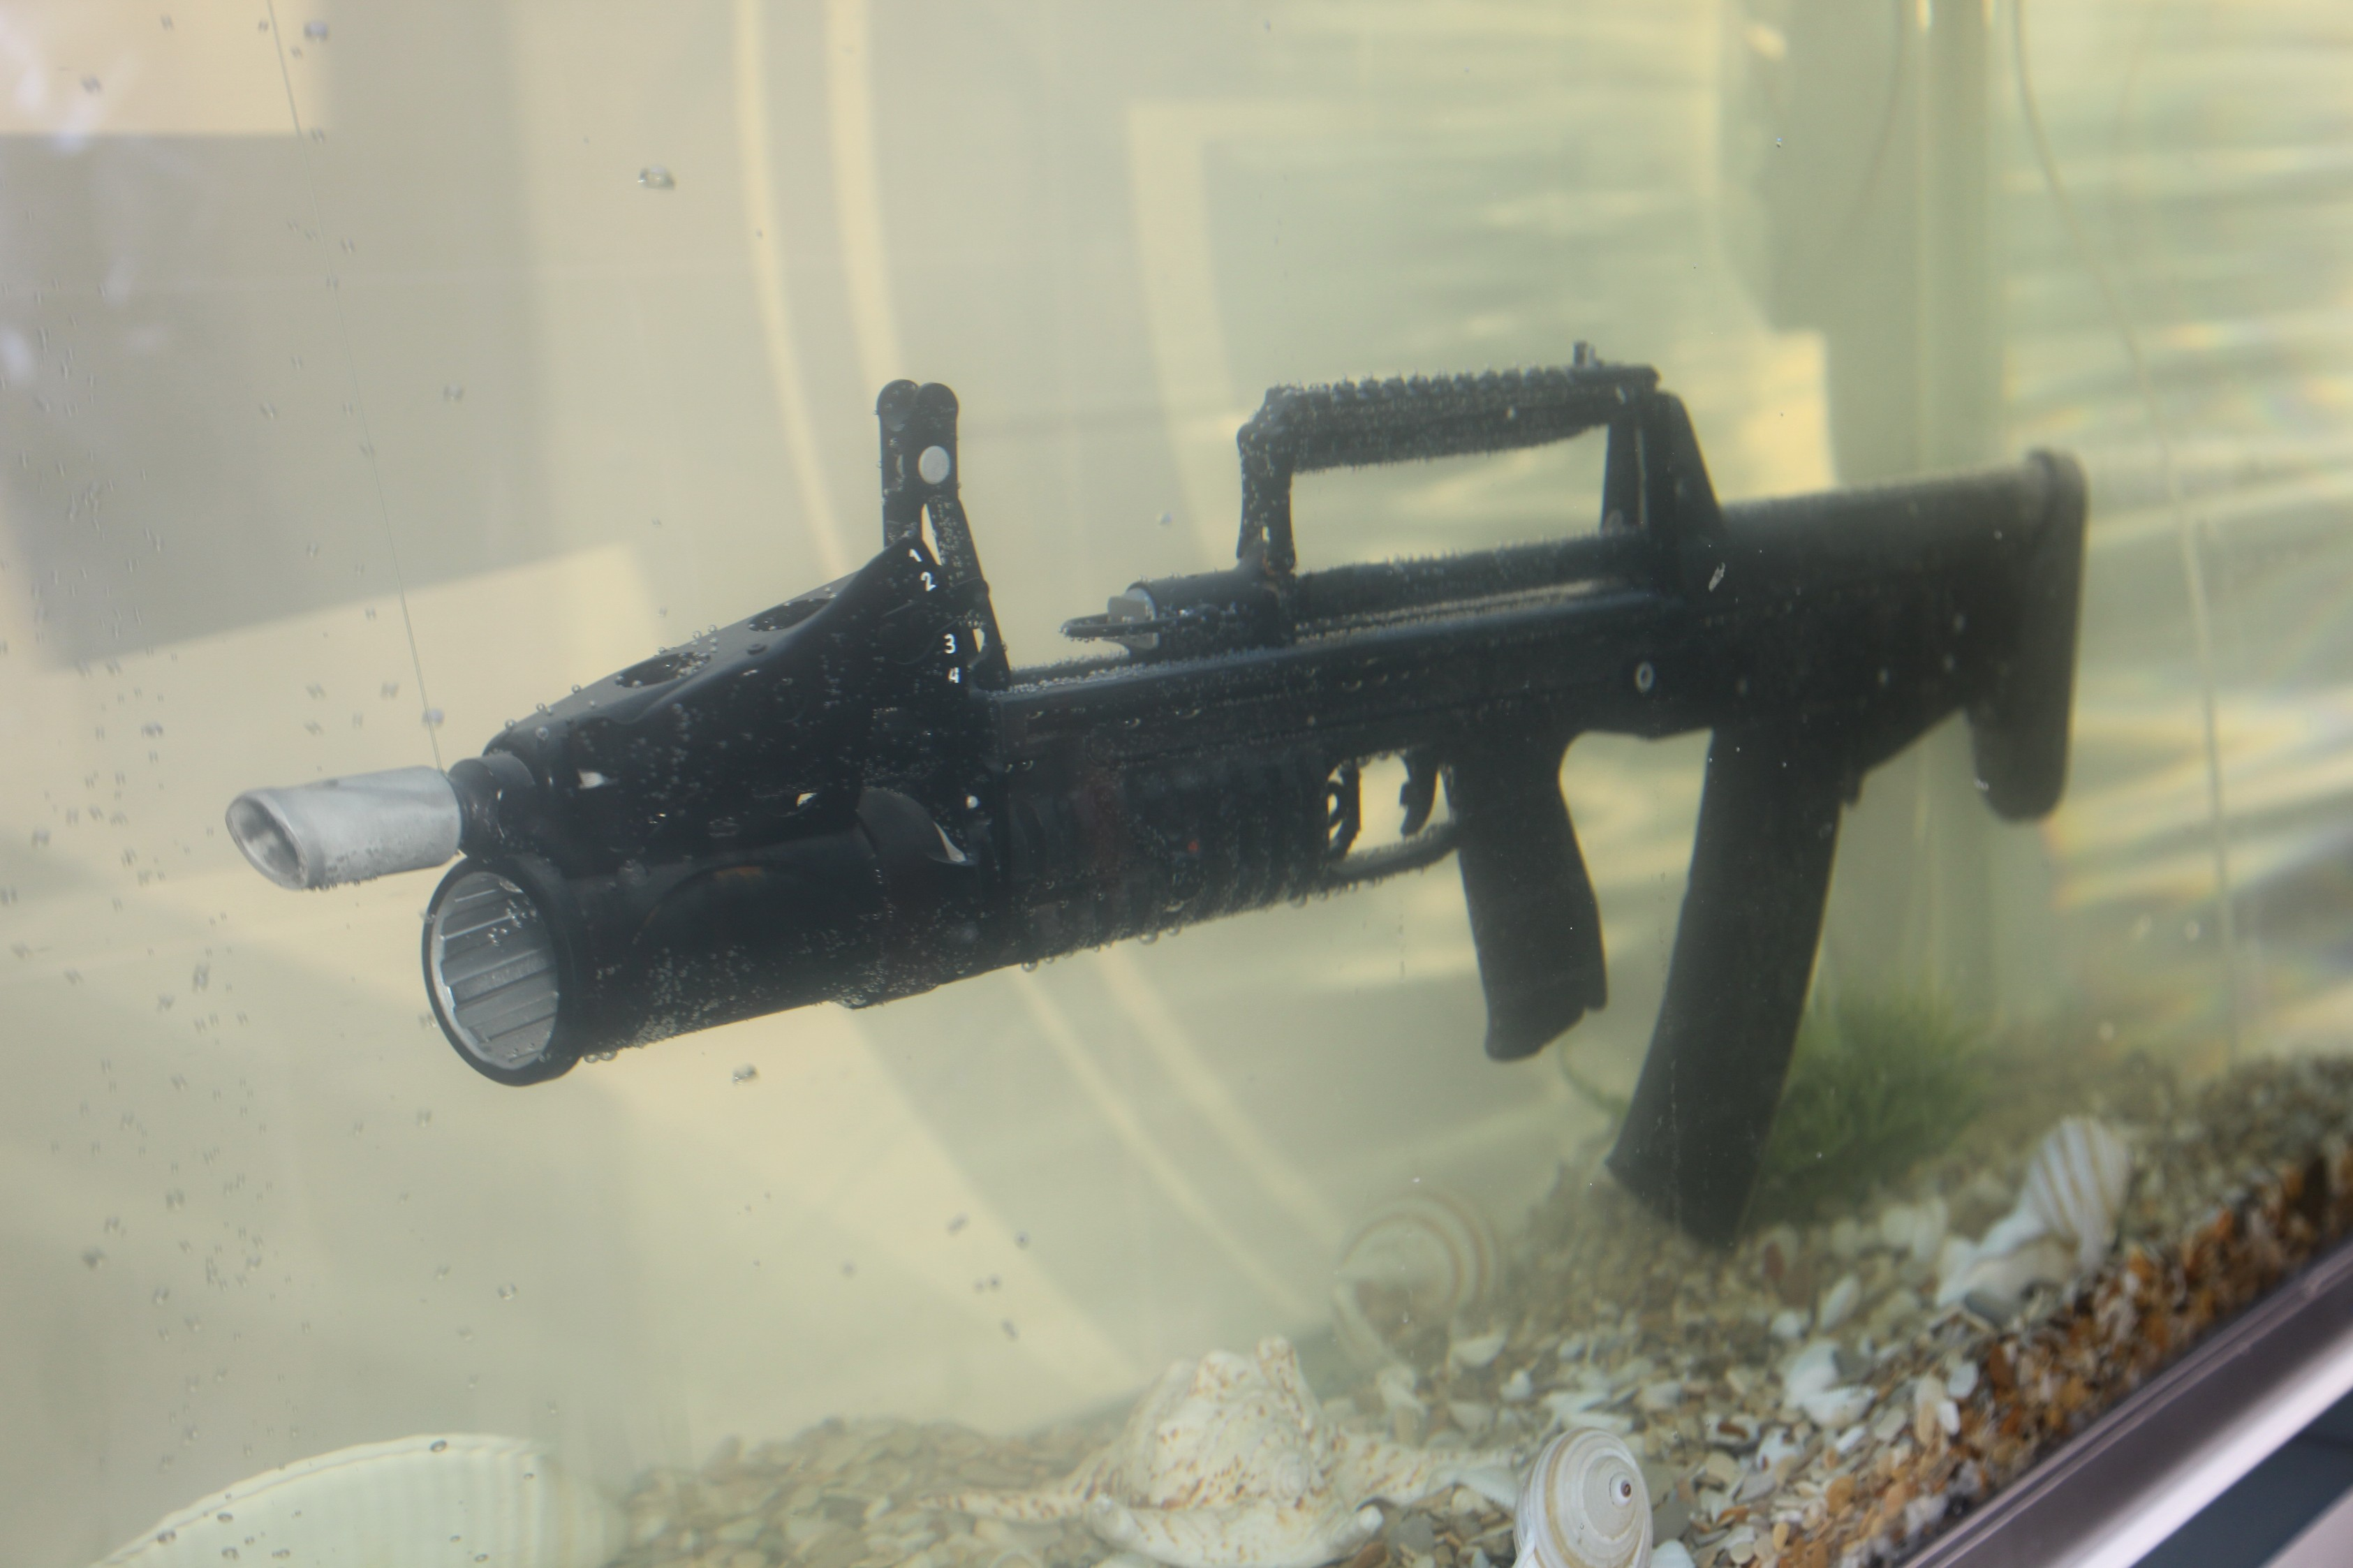 Spp 1 underwater pistol - Filename Russian Ads Underwater Gun 2 Jpg 1 Jpg